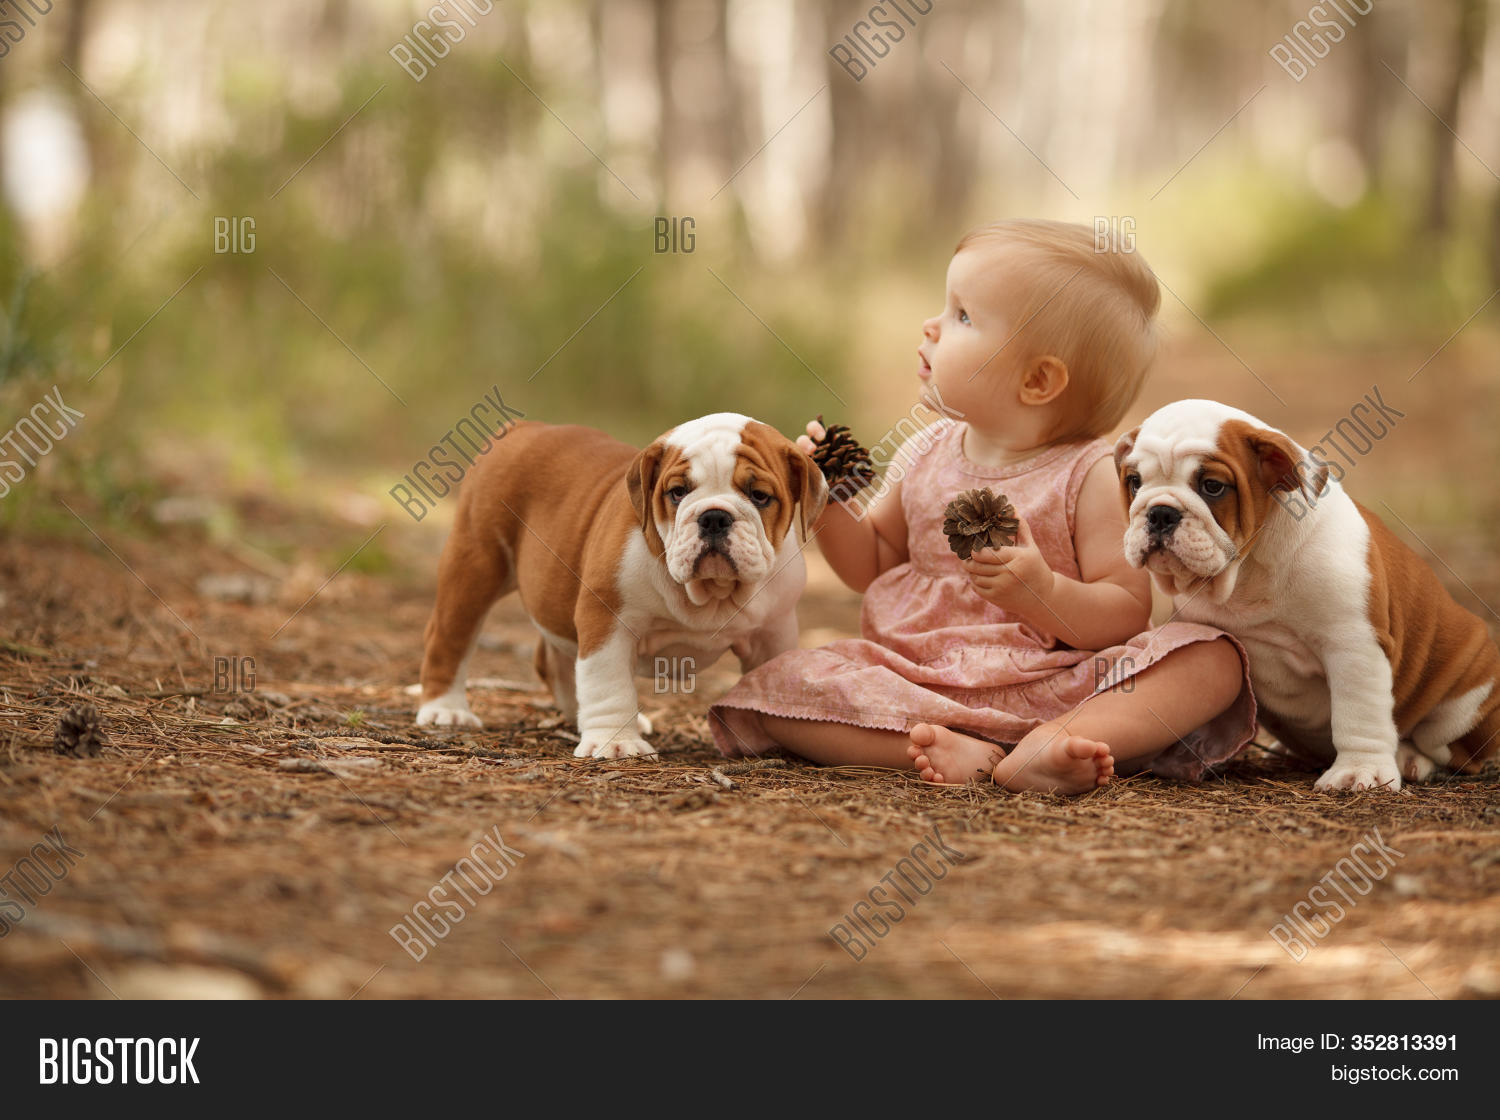 Cute Little Baby Two Image Photo